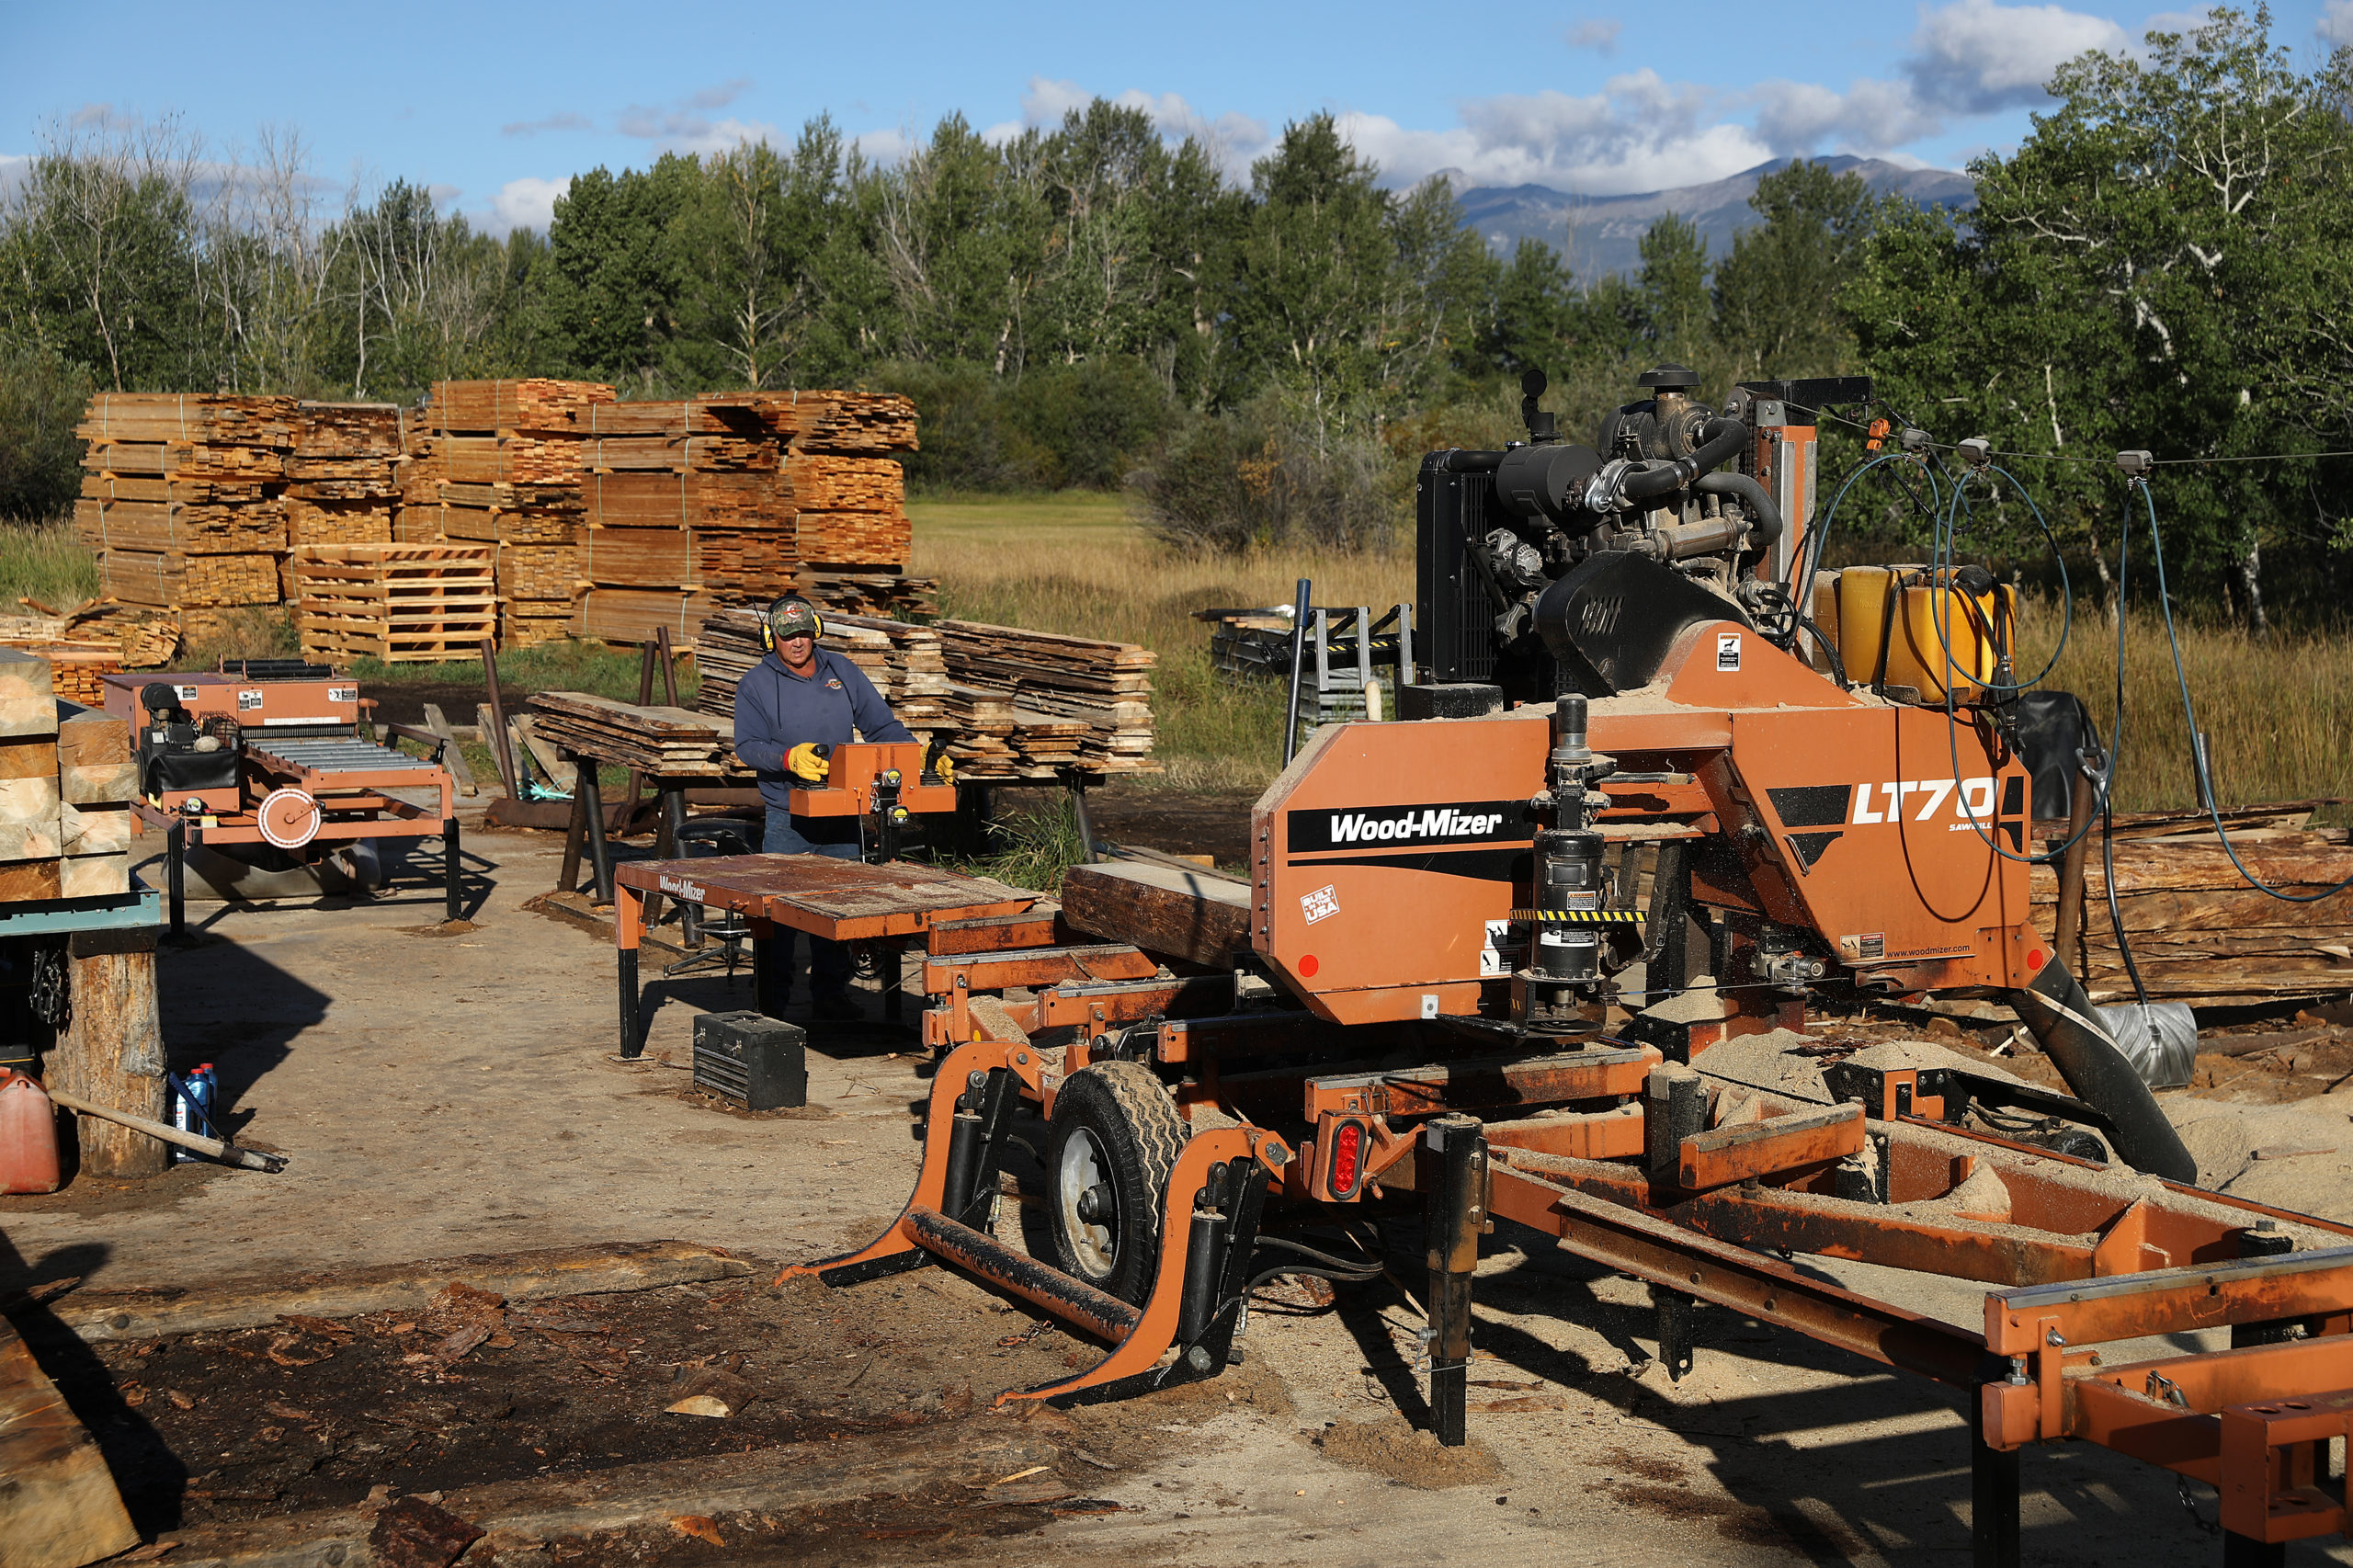 A sawmill in Deer Lodge, Montana. (Photo by Chip Somodevilla/Getty Images)